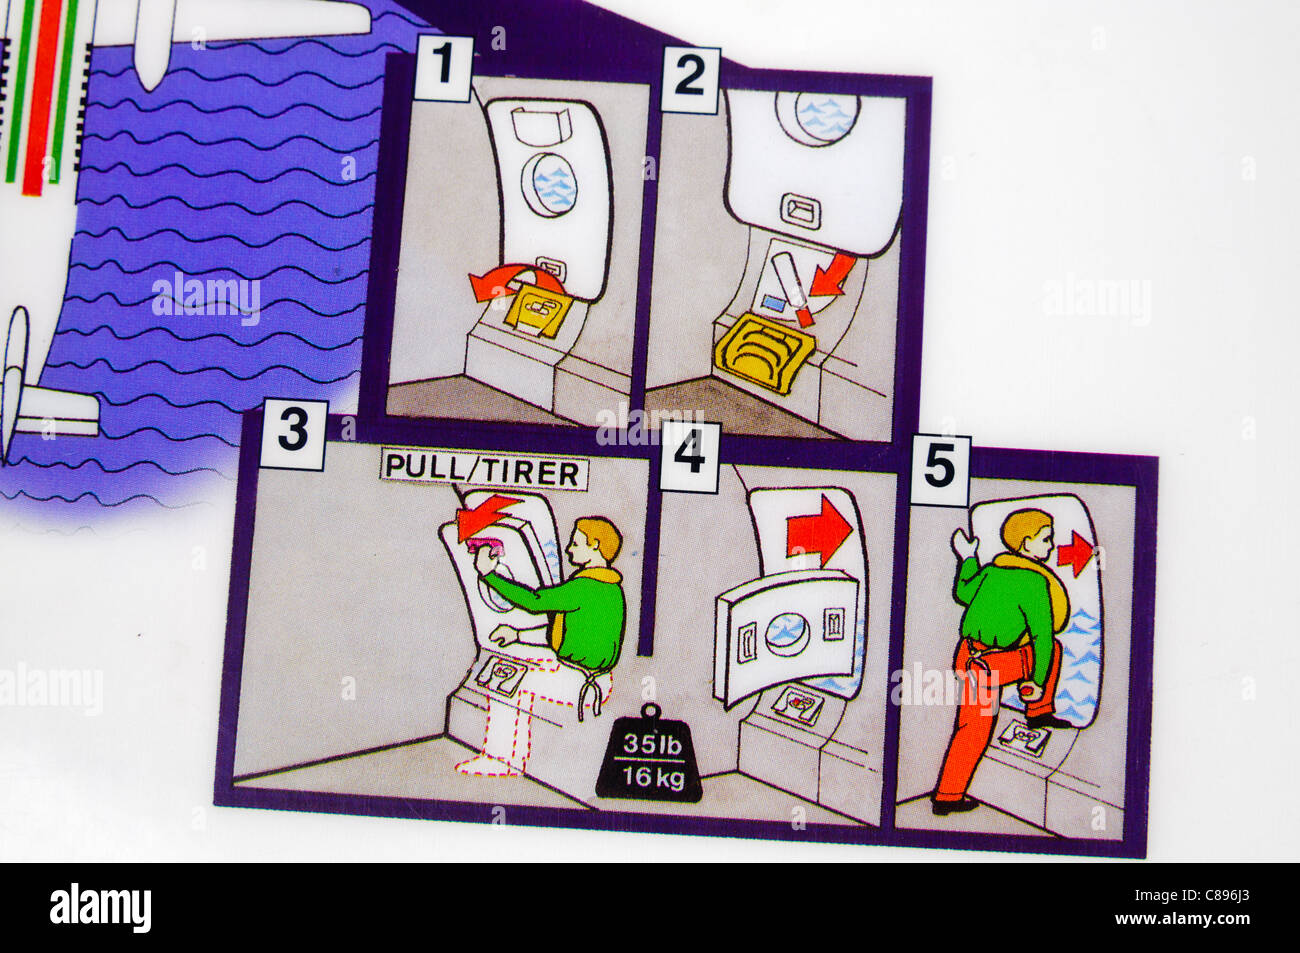 Closeup of an airline safety card showing how to evacuate in the event of an emergency - Stock Image